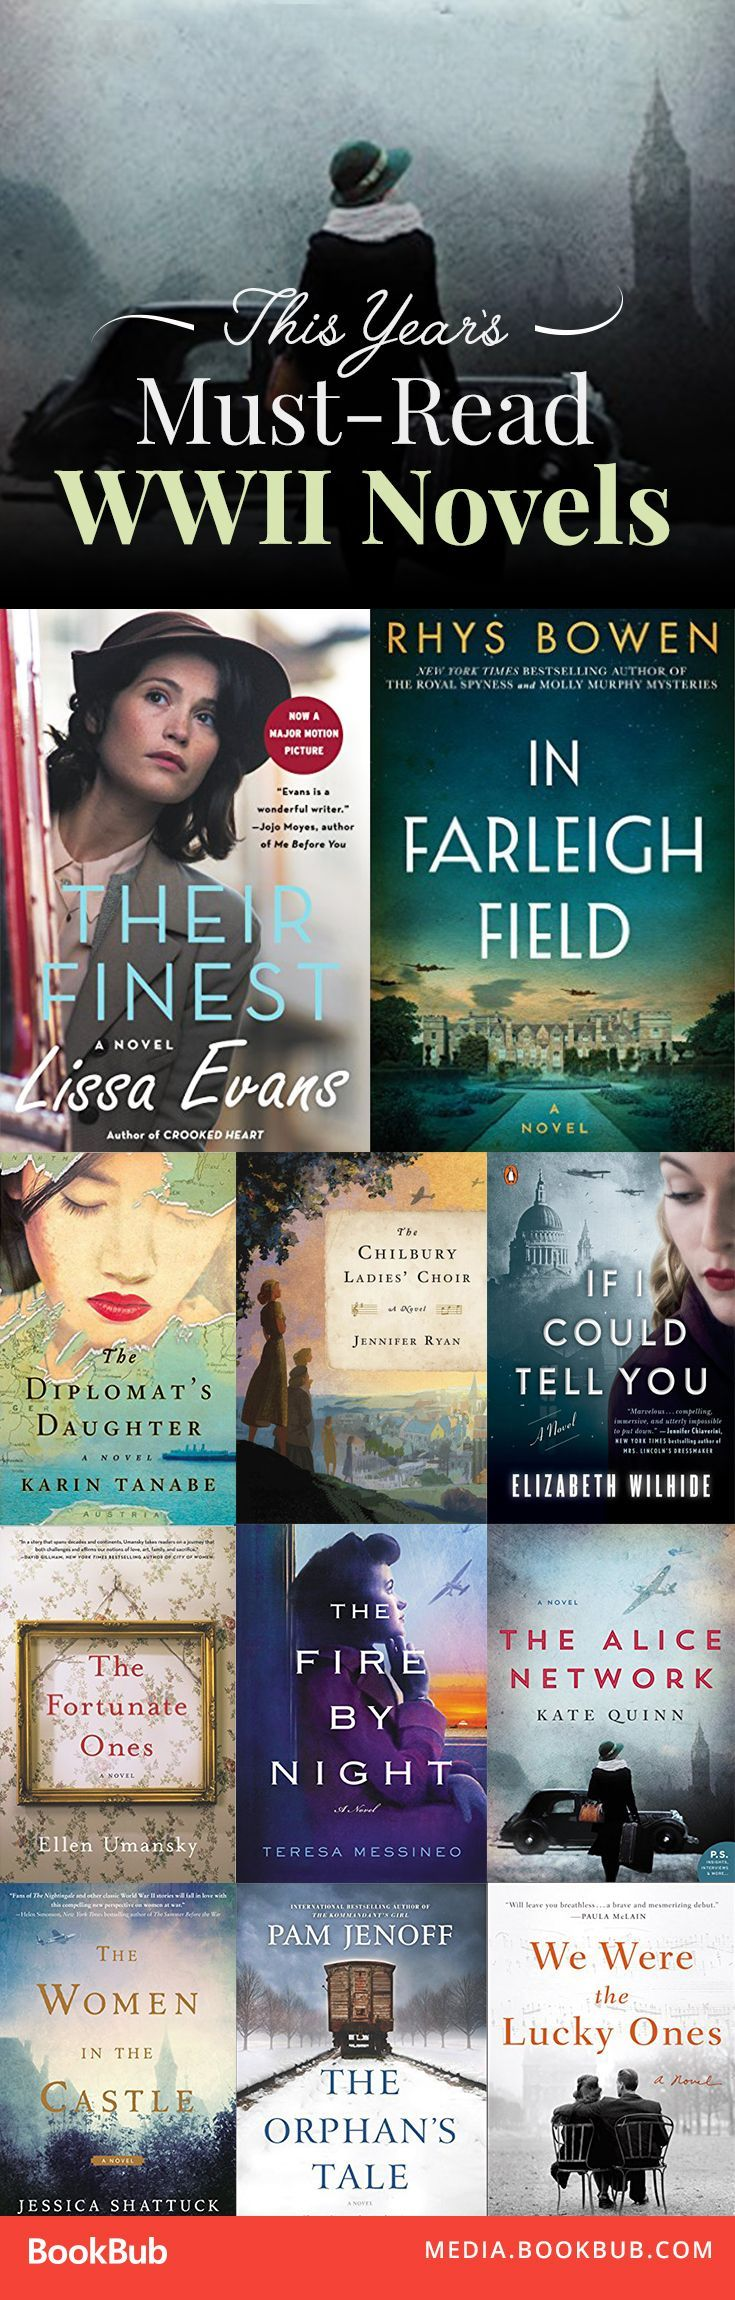 11 Exciting World War Ii Novelsing In 2017